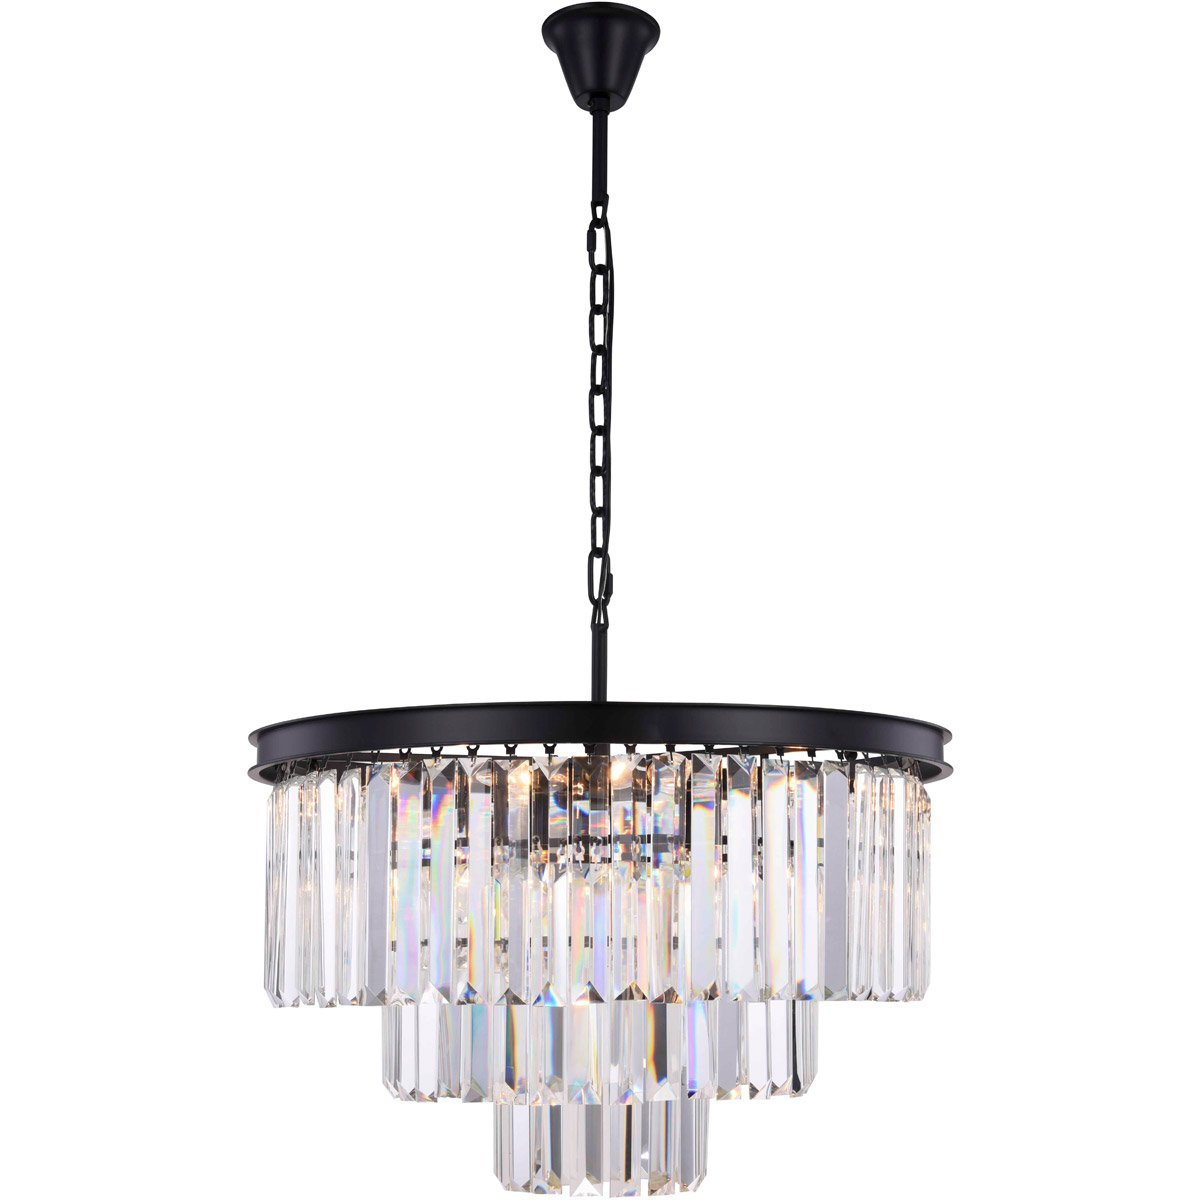 Sydney 26 Crystal Pendant Chandelier With 9 Lights - Matte Black Finish And Clear Crystal Chandelier